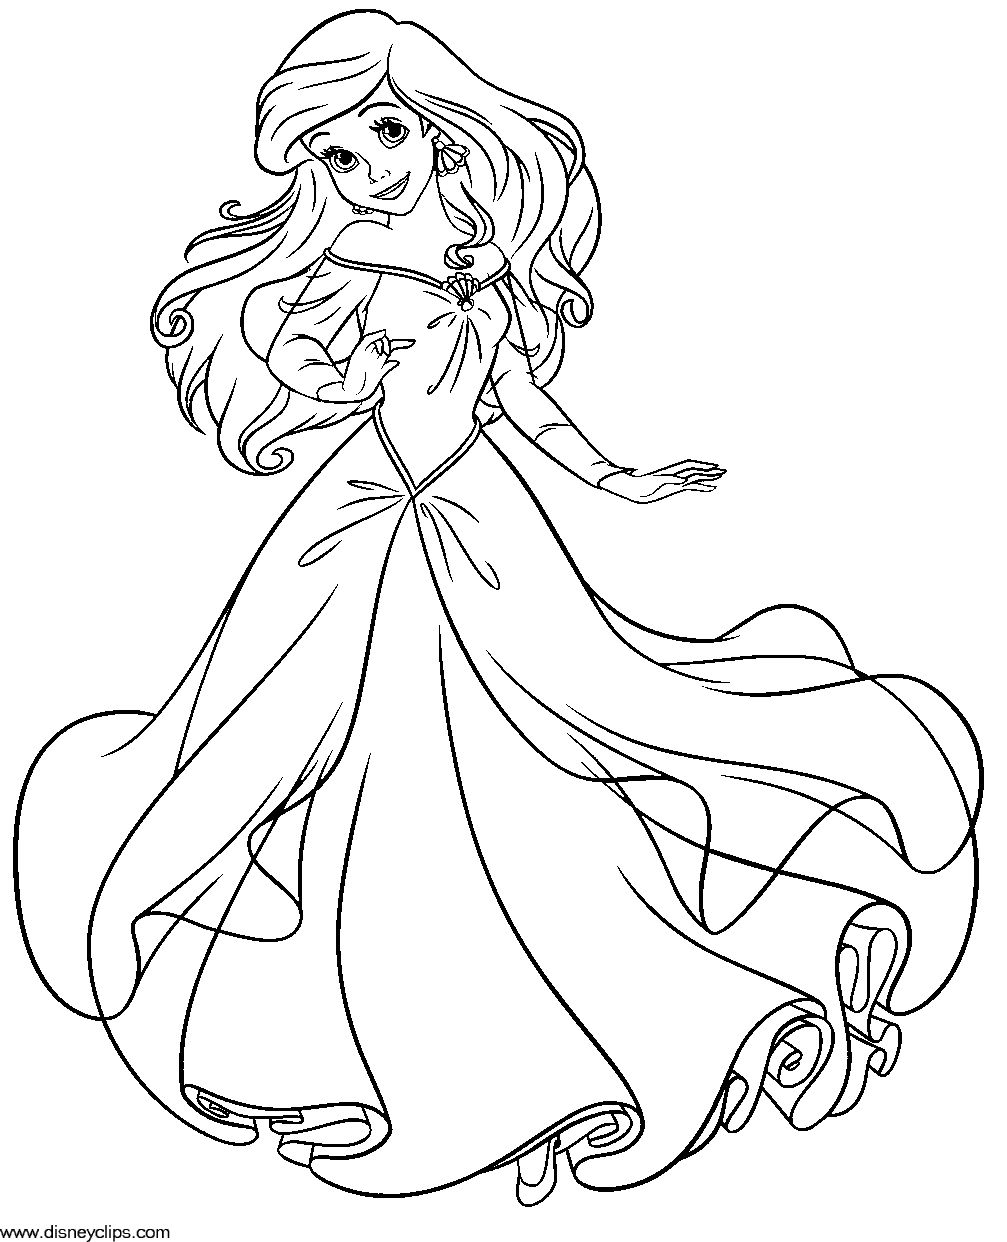 The Little Mermaid Coloring Pages | Coloring Pages | Pinterest ...